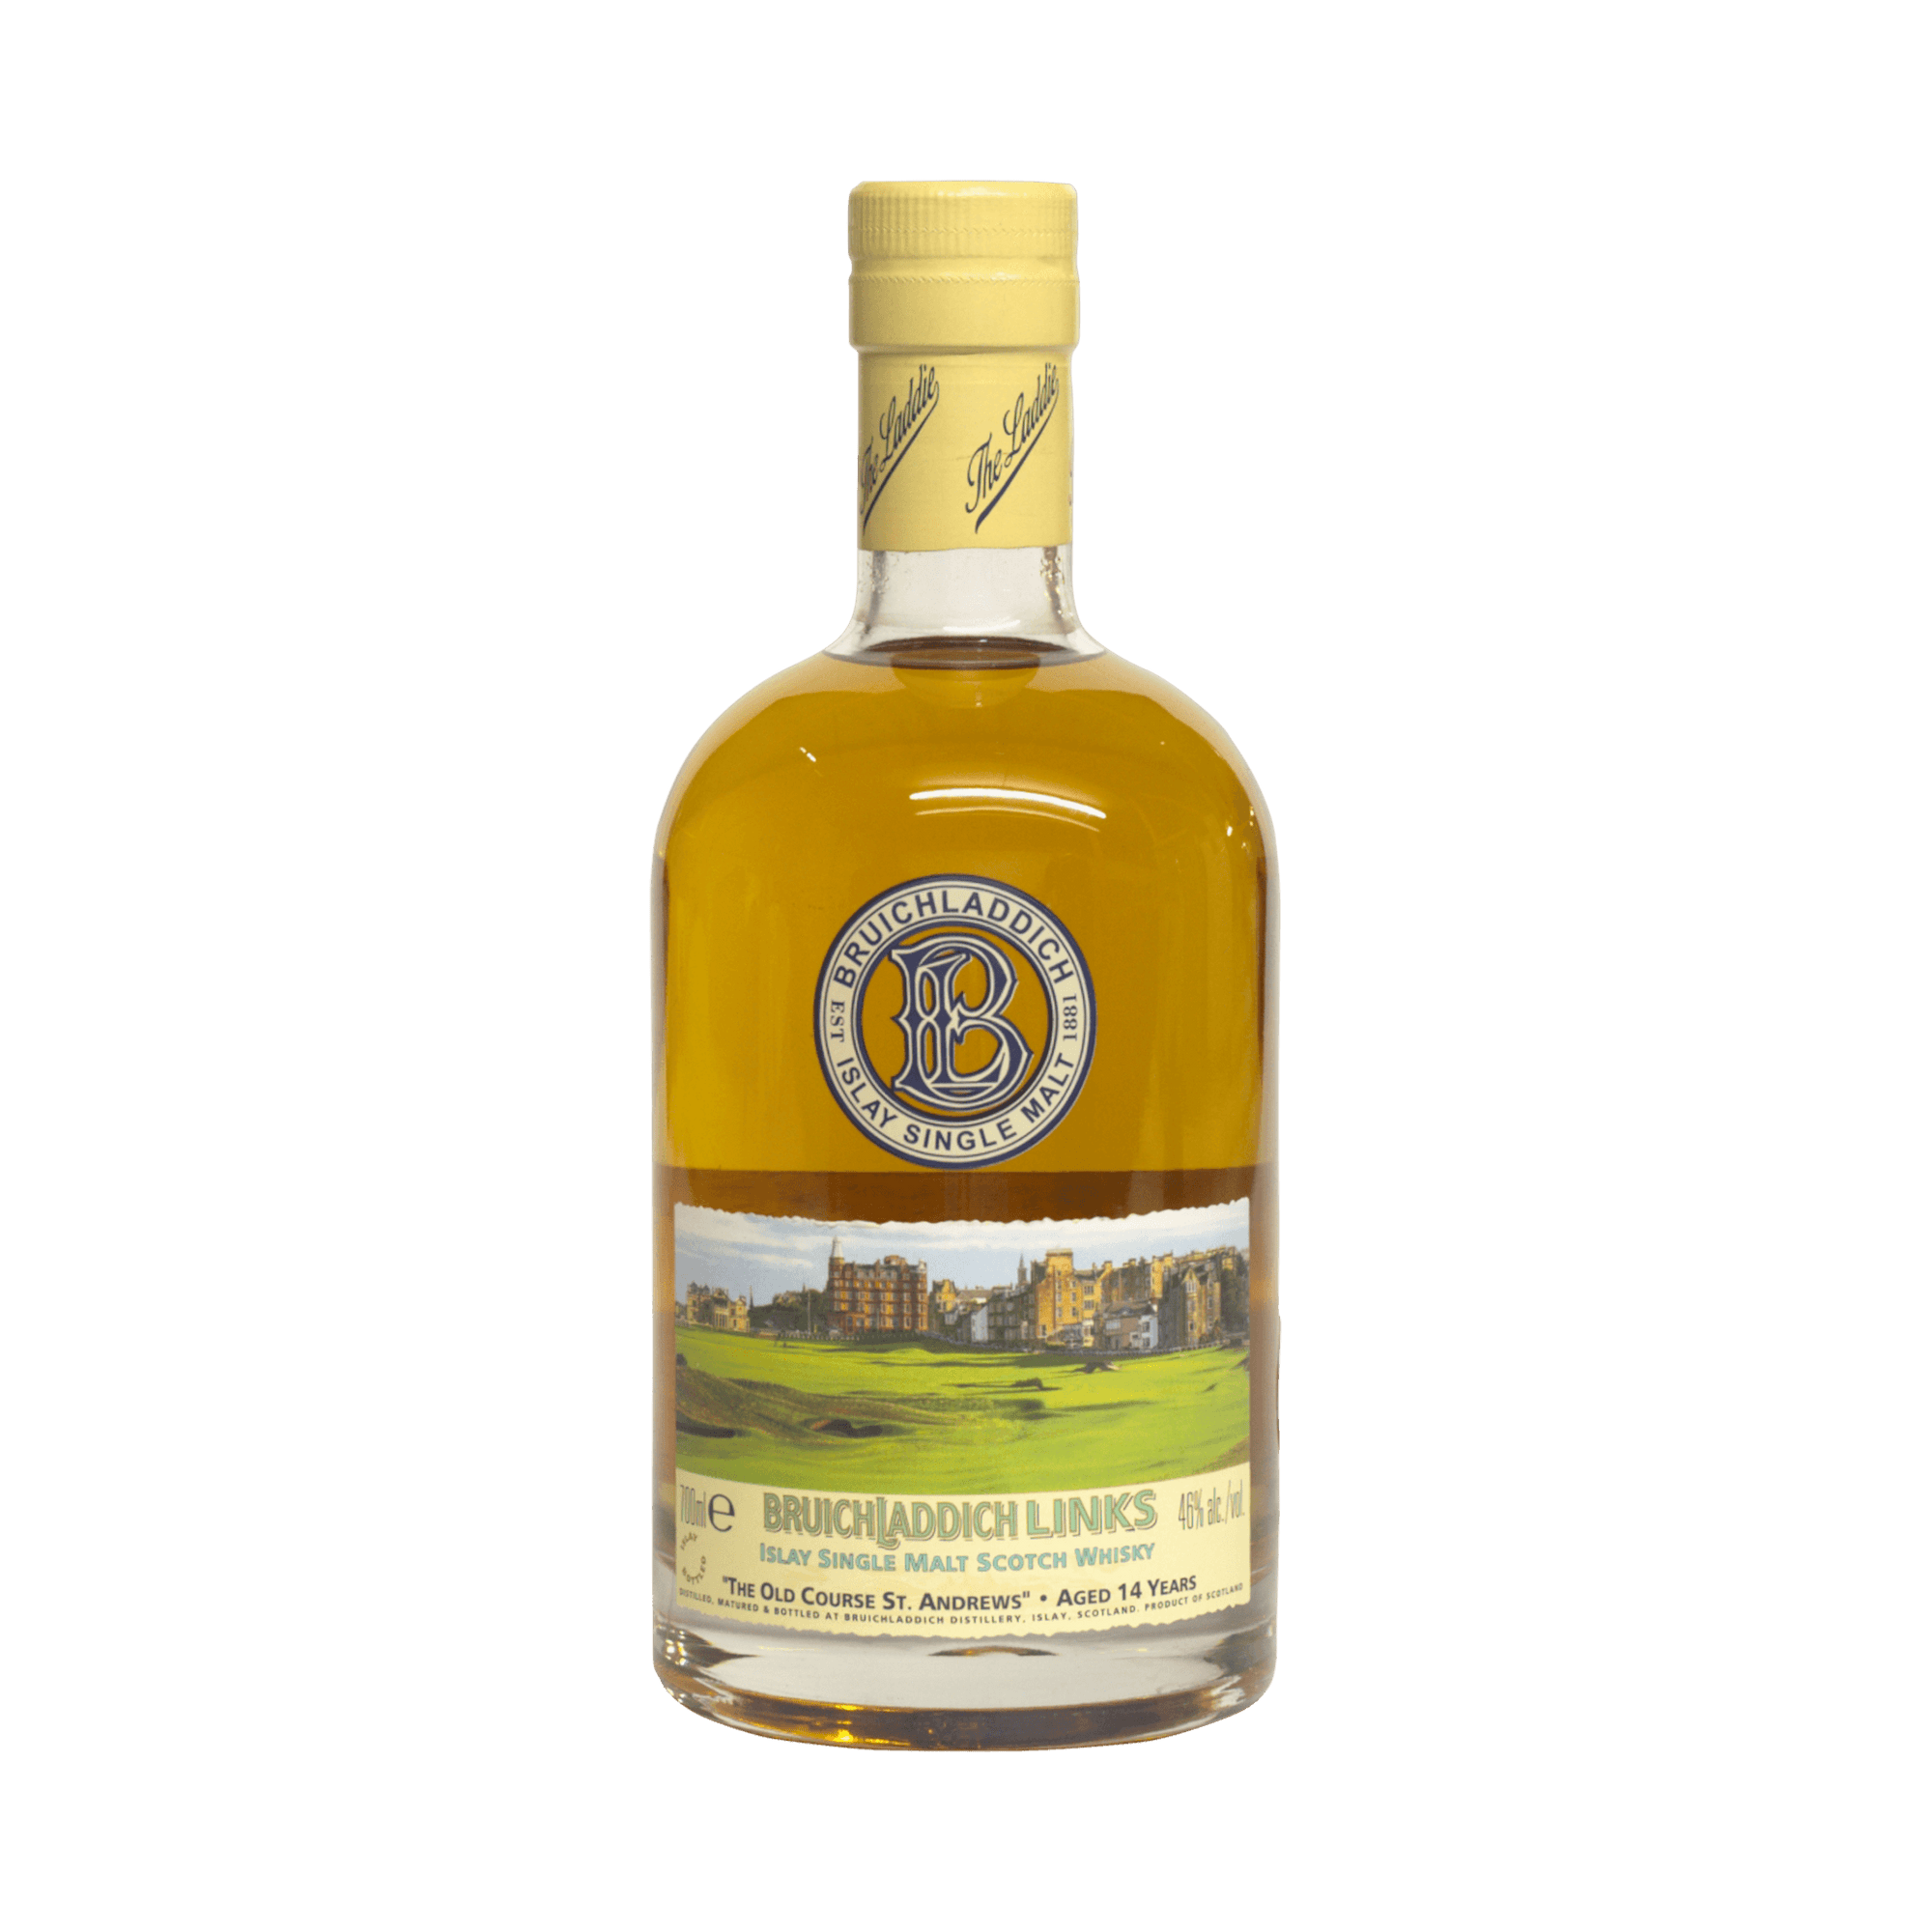 Bruichladdich 14 Year Old 'Links – The Old Course St Andrews' 46.00%